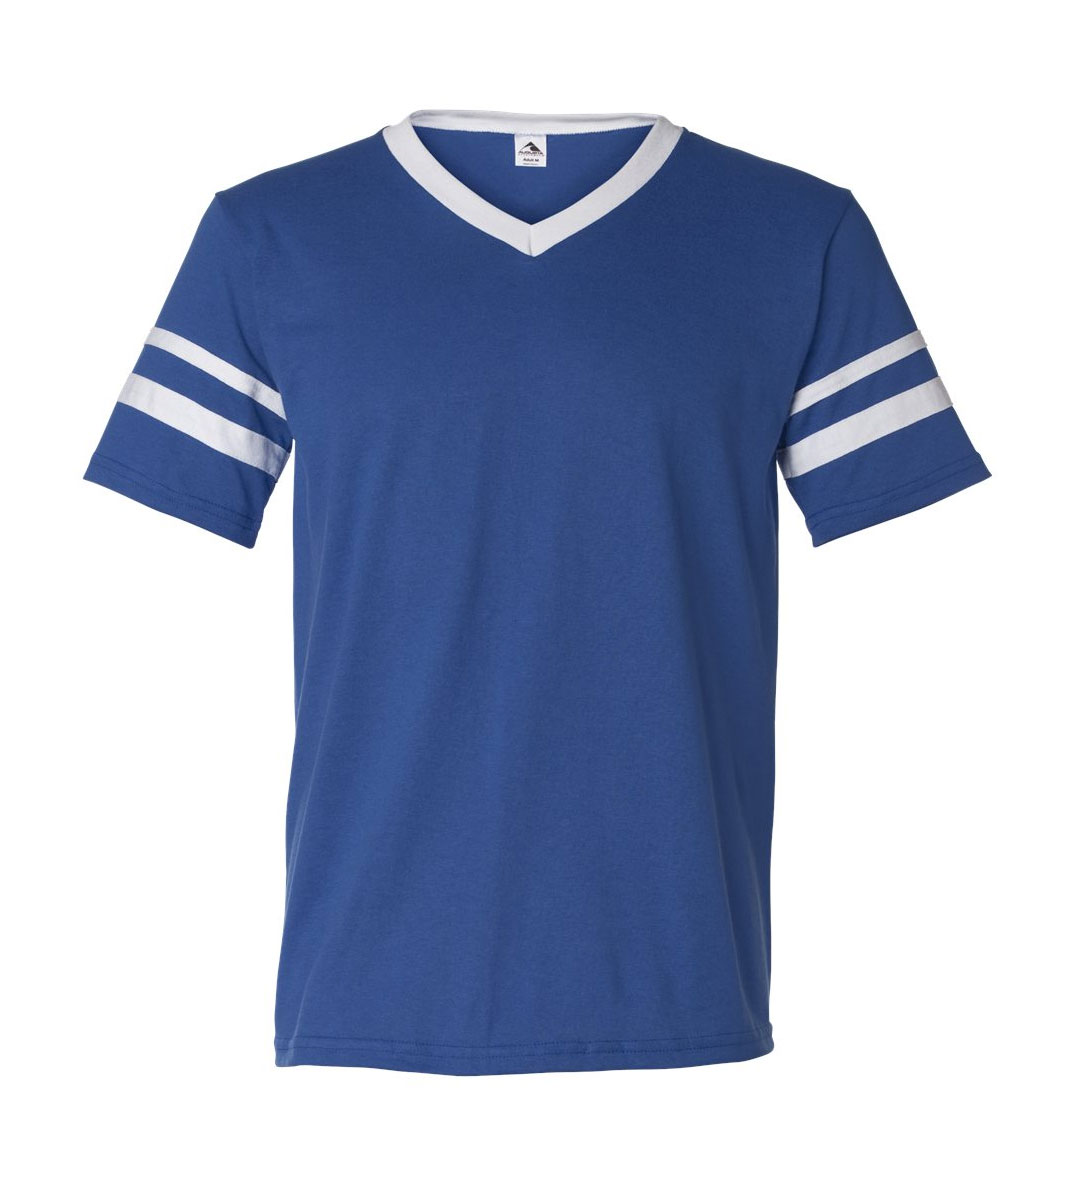 Youth Sleeve Stripe Jersey